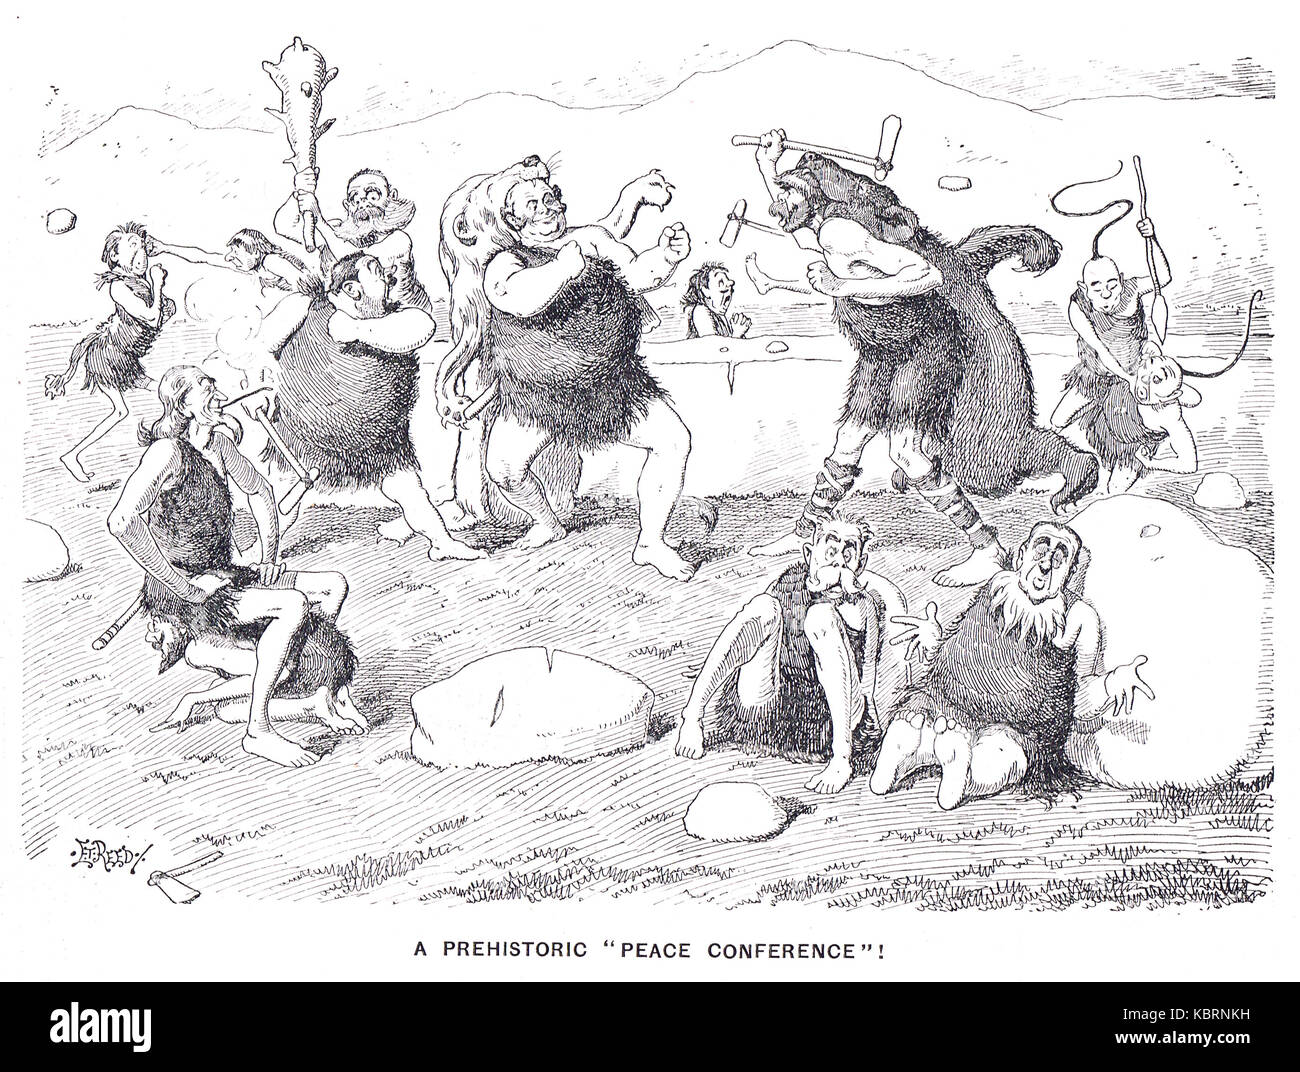 Prehistoric Peace Conference, Punch 1899 - Stock Image